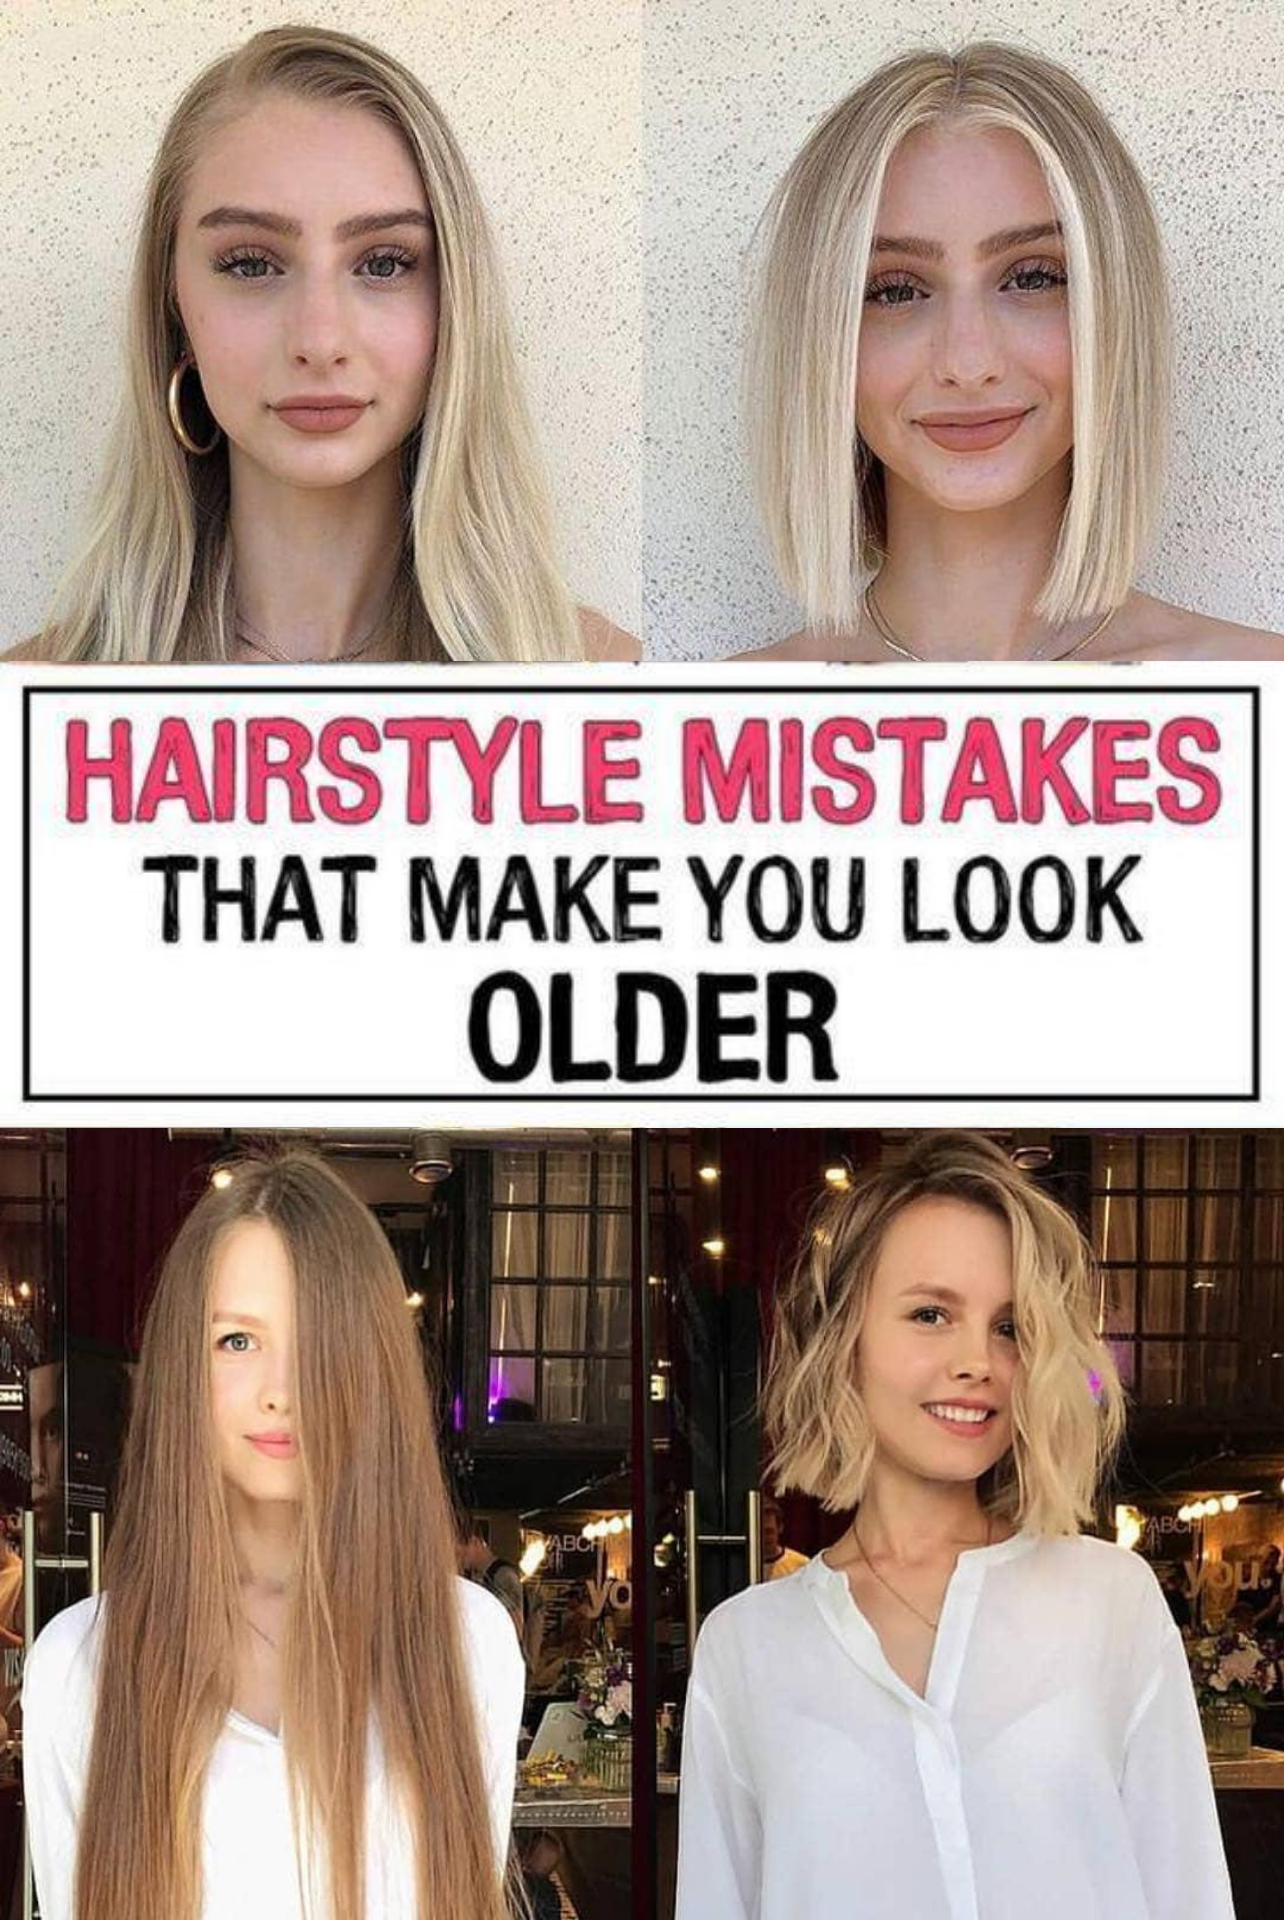 17 Hairstyle Mistakes That Are Aging You In 2020 Hairstyle Mom Hairstyles Hair Advice